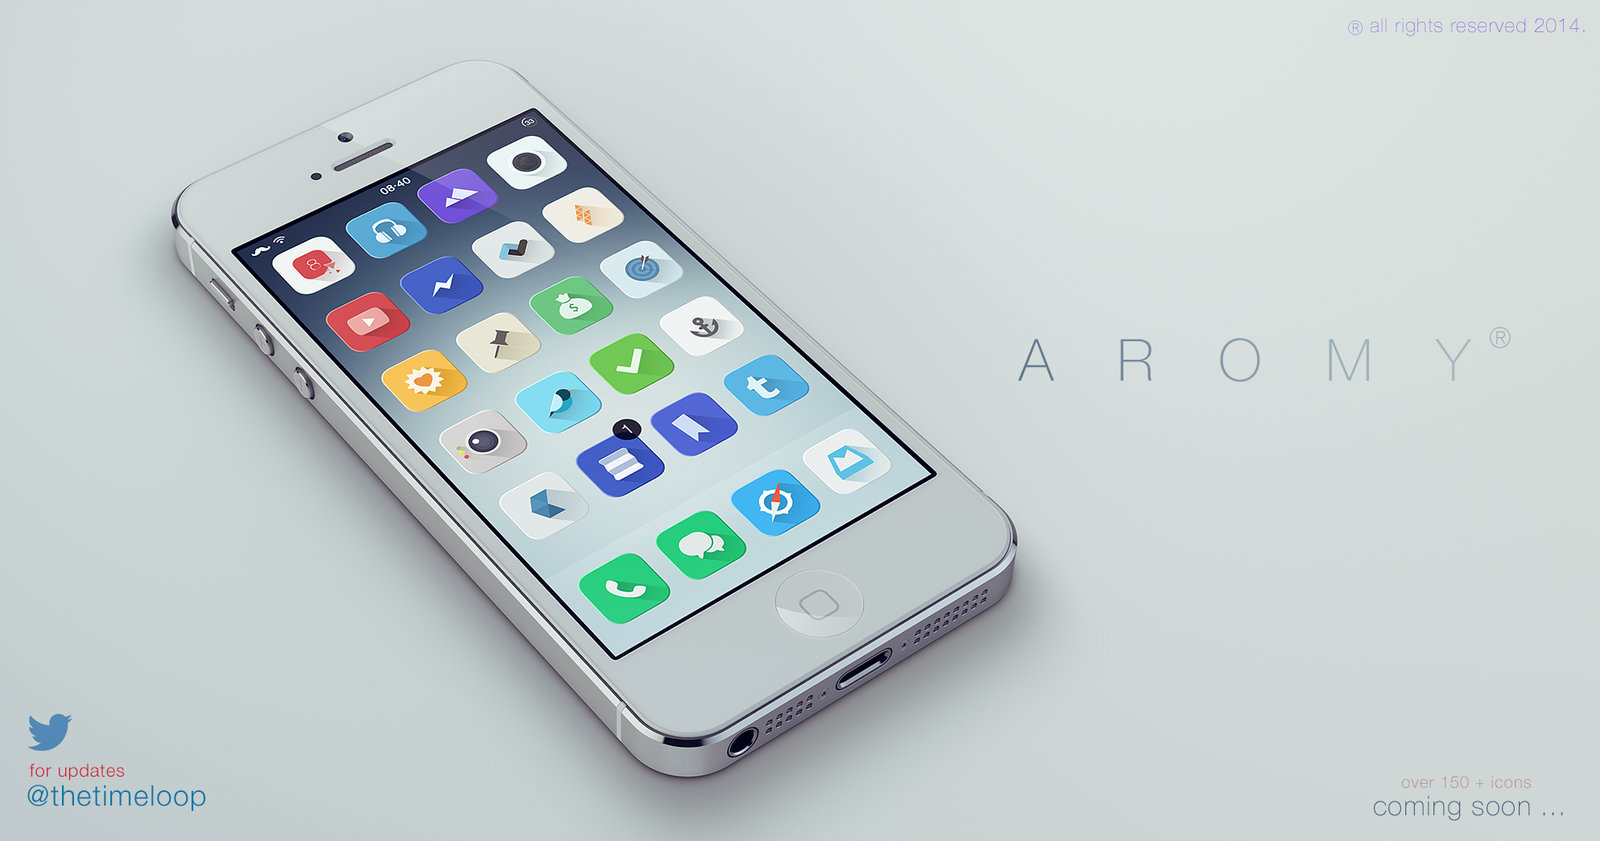 aromy___ios_7_theme___launched___by_thetimeloop d75ryg8